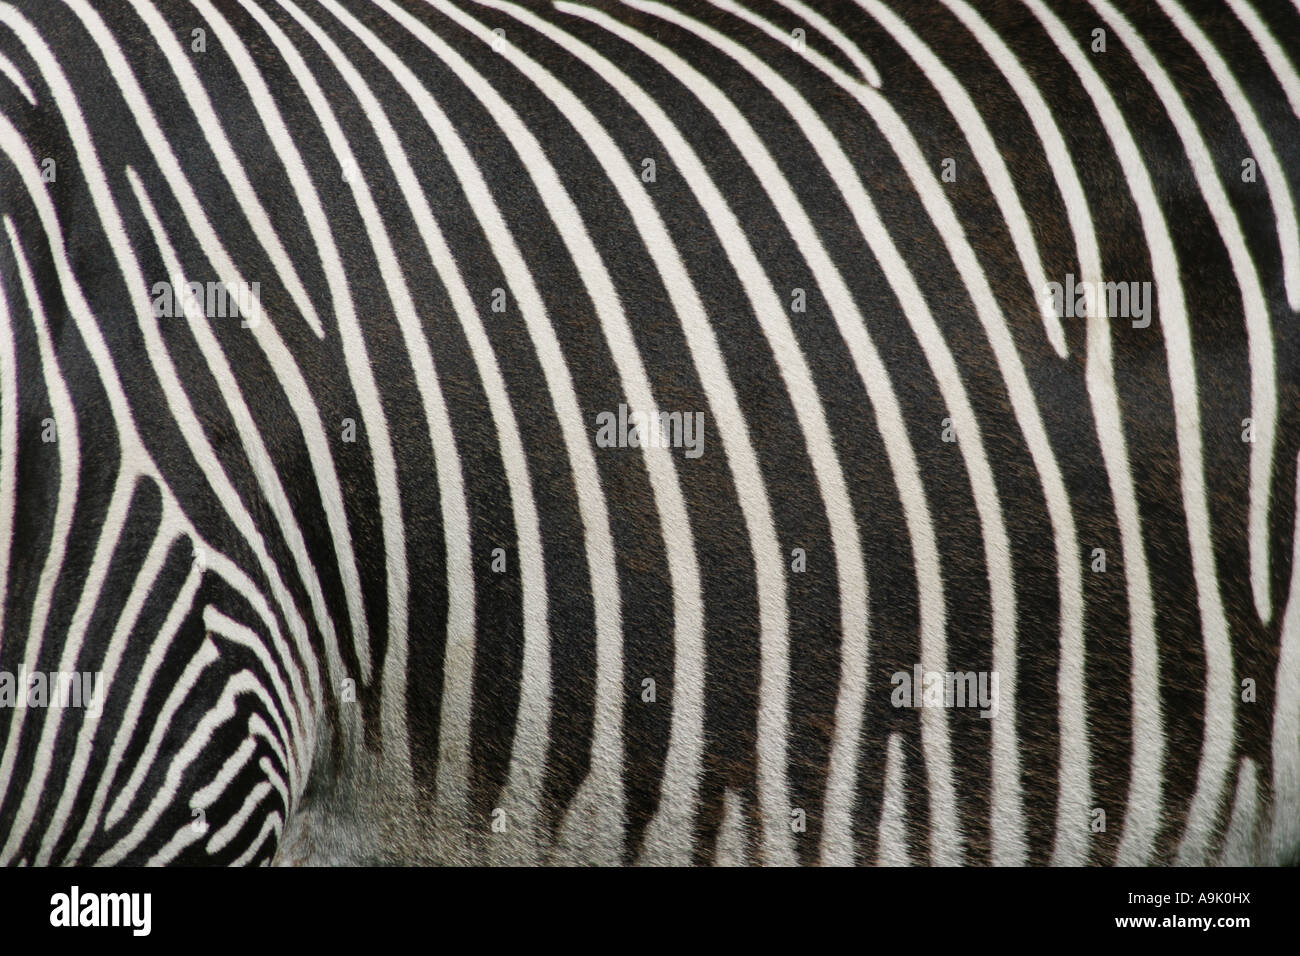 close up of the black and white pattern on a zebra - Stock Image